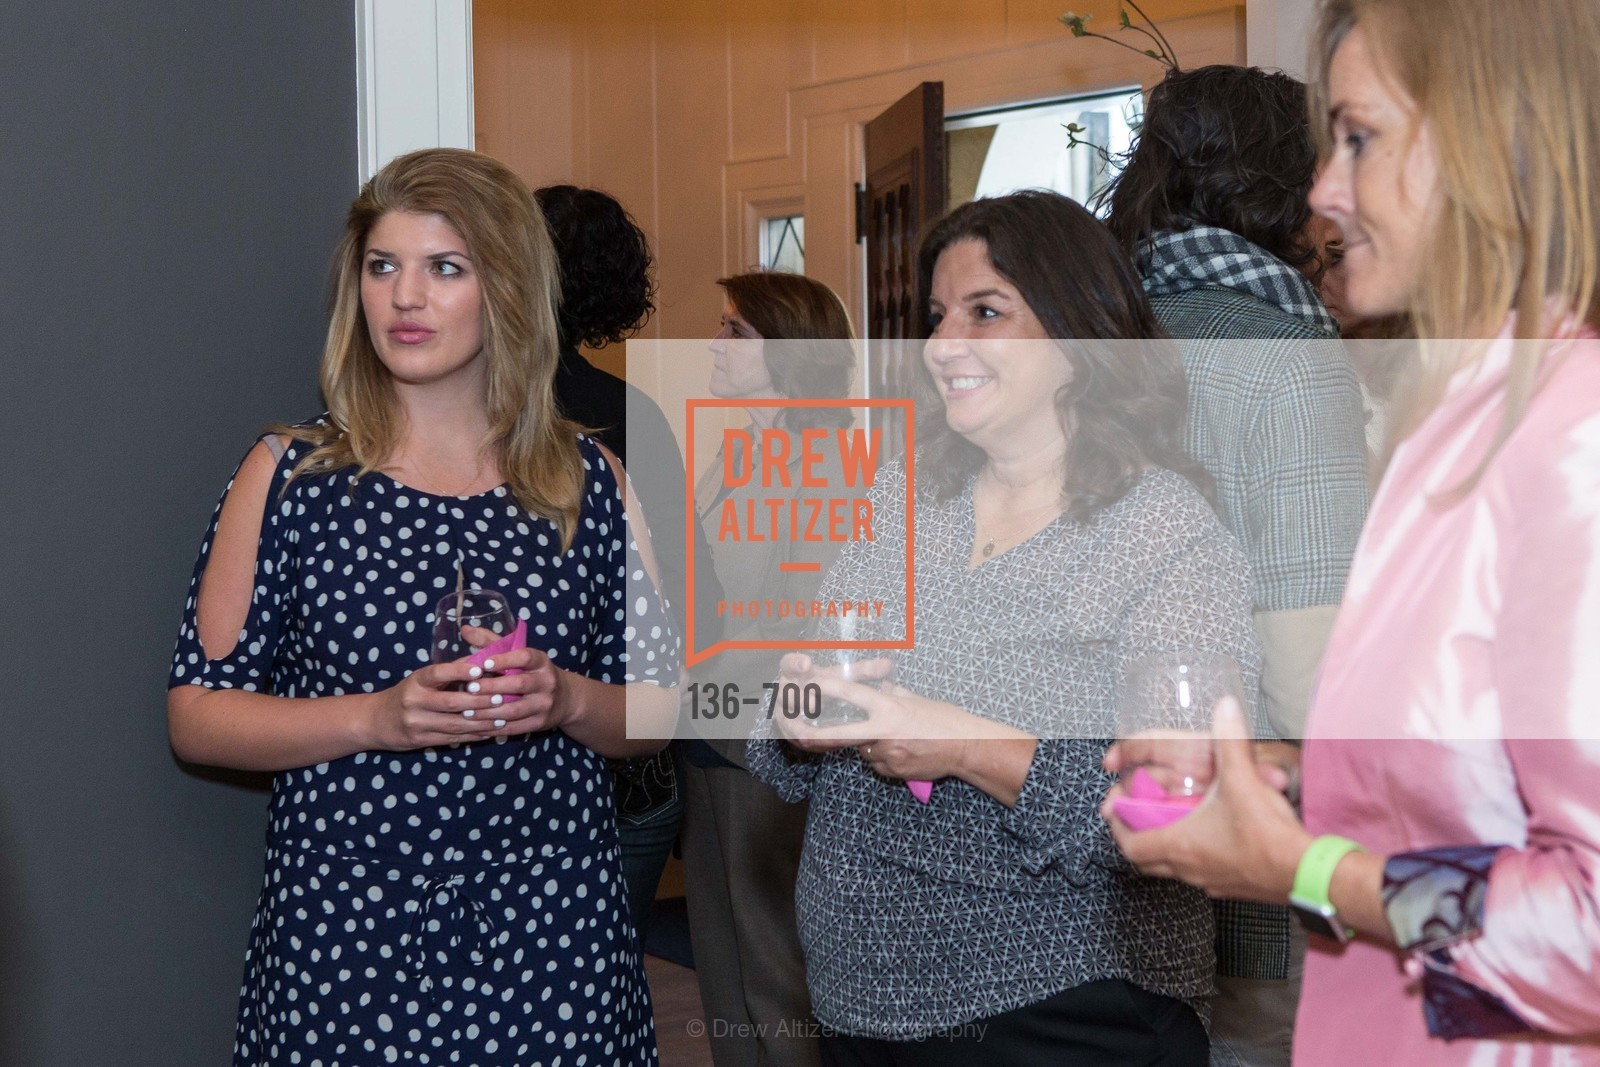 Susie Stangland, Bridget Stangland, SUKEY FORBES' Book Signing, US, May 7th, 2015,Drew Altizer, Drew Altizer Photography, full-service agency, private events, San Francisco photographer, photographer california